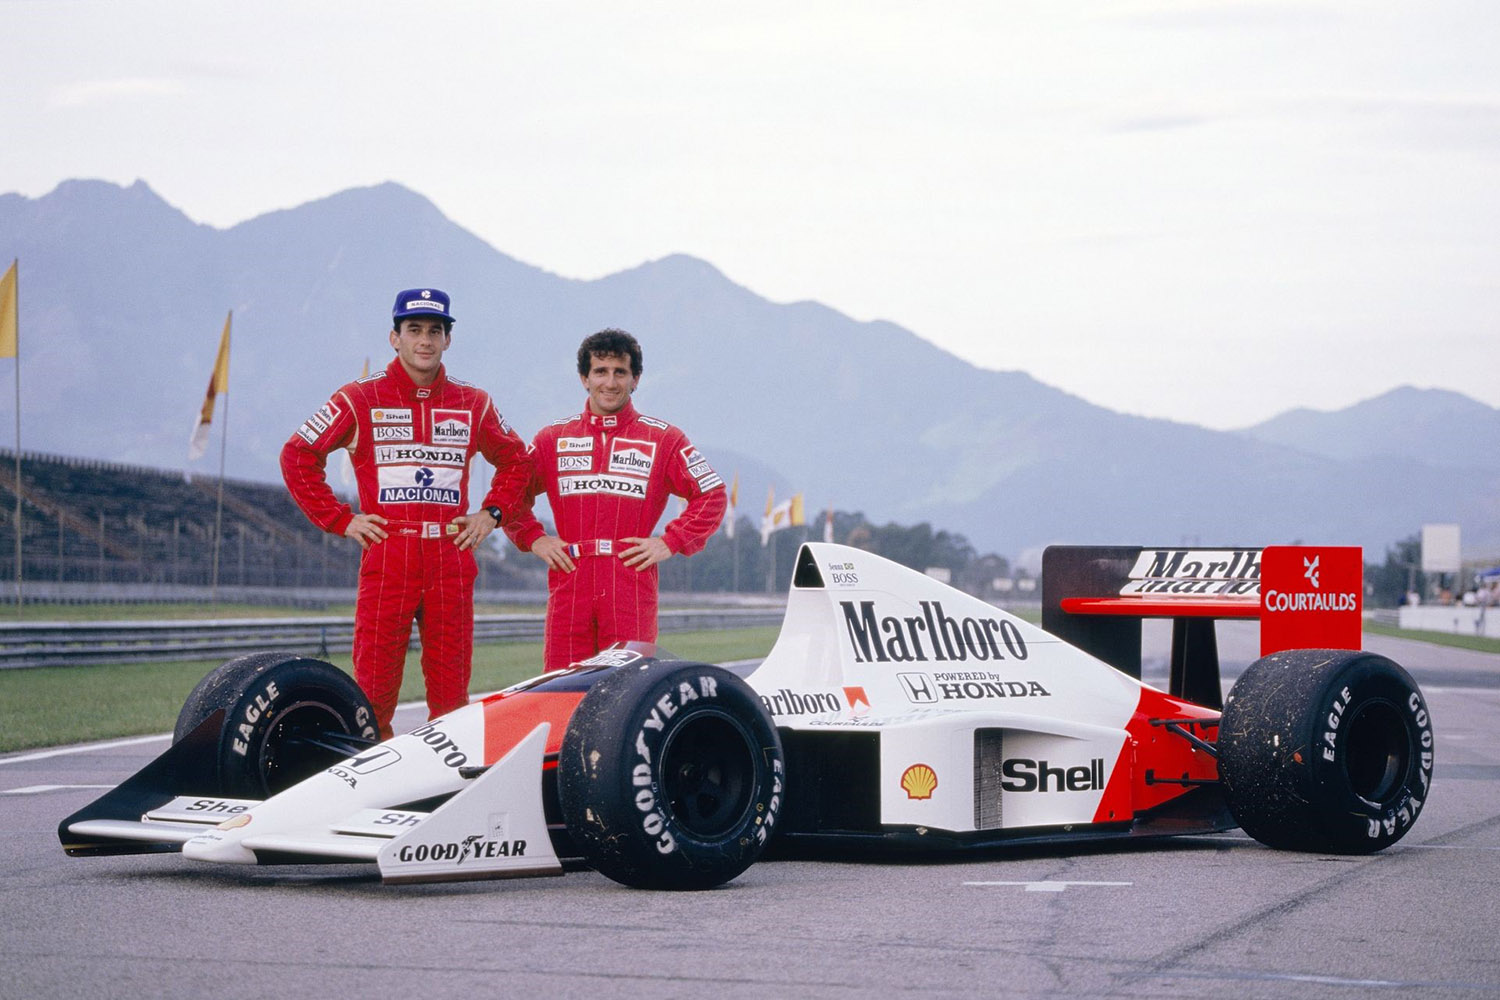 1989 marlboro mclaren honda mp4 5 ayrton senna alain prost brazillian grand prix jacarepagua. Black Bedroom Furniture Sets. Home Design Ideas